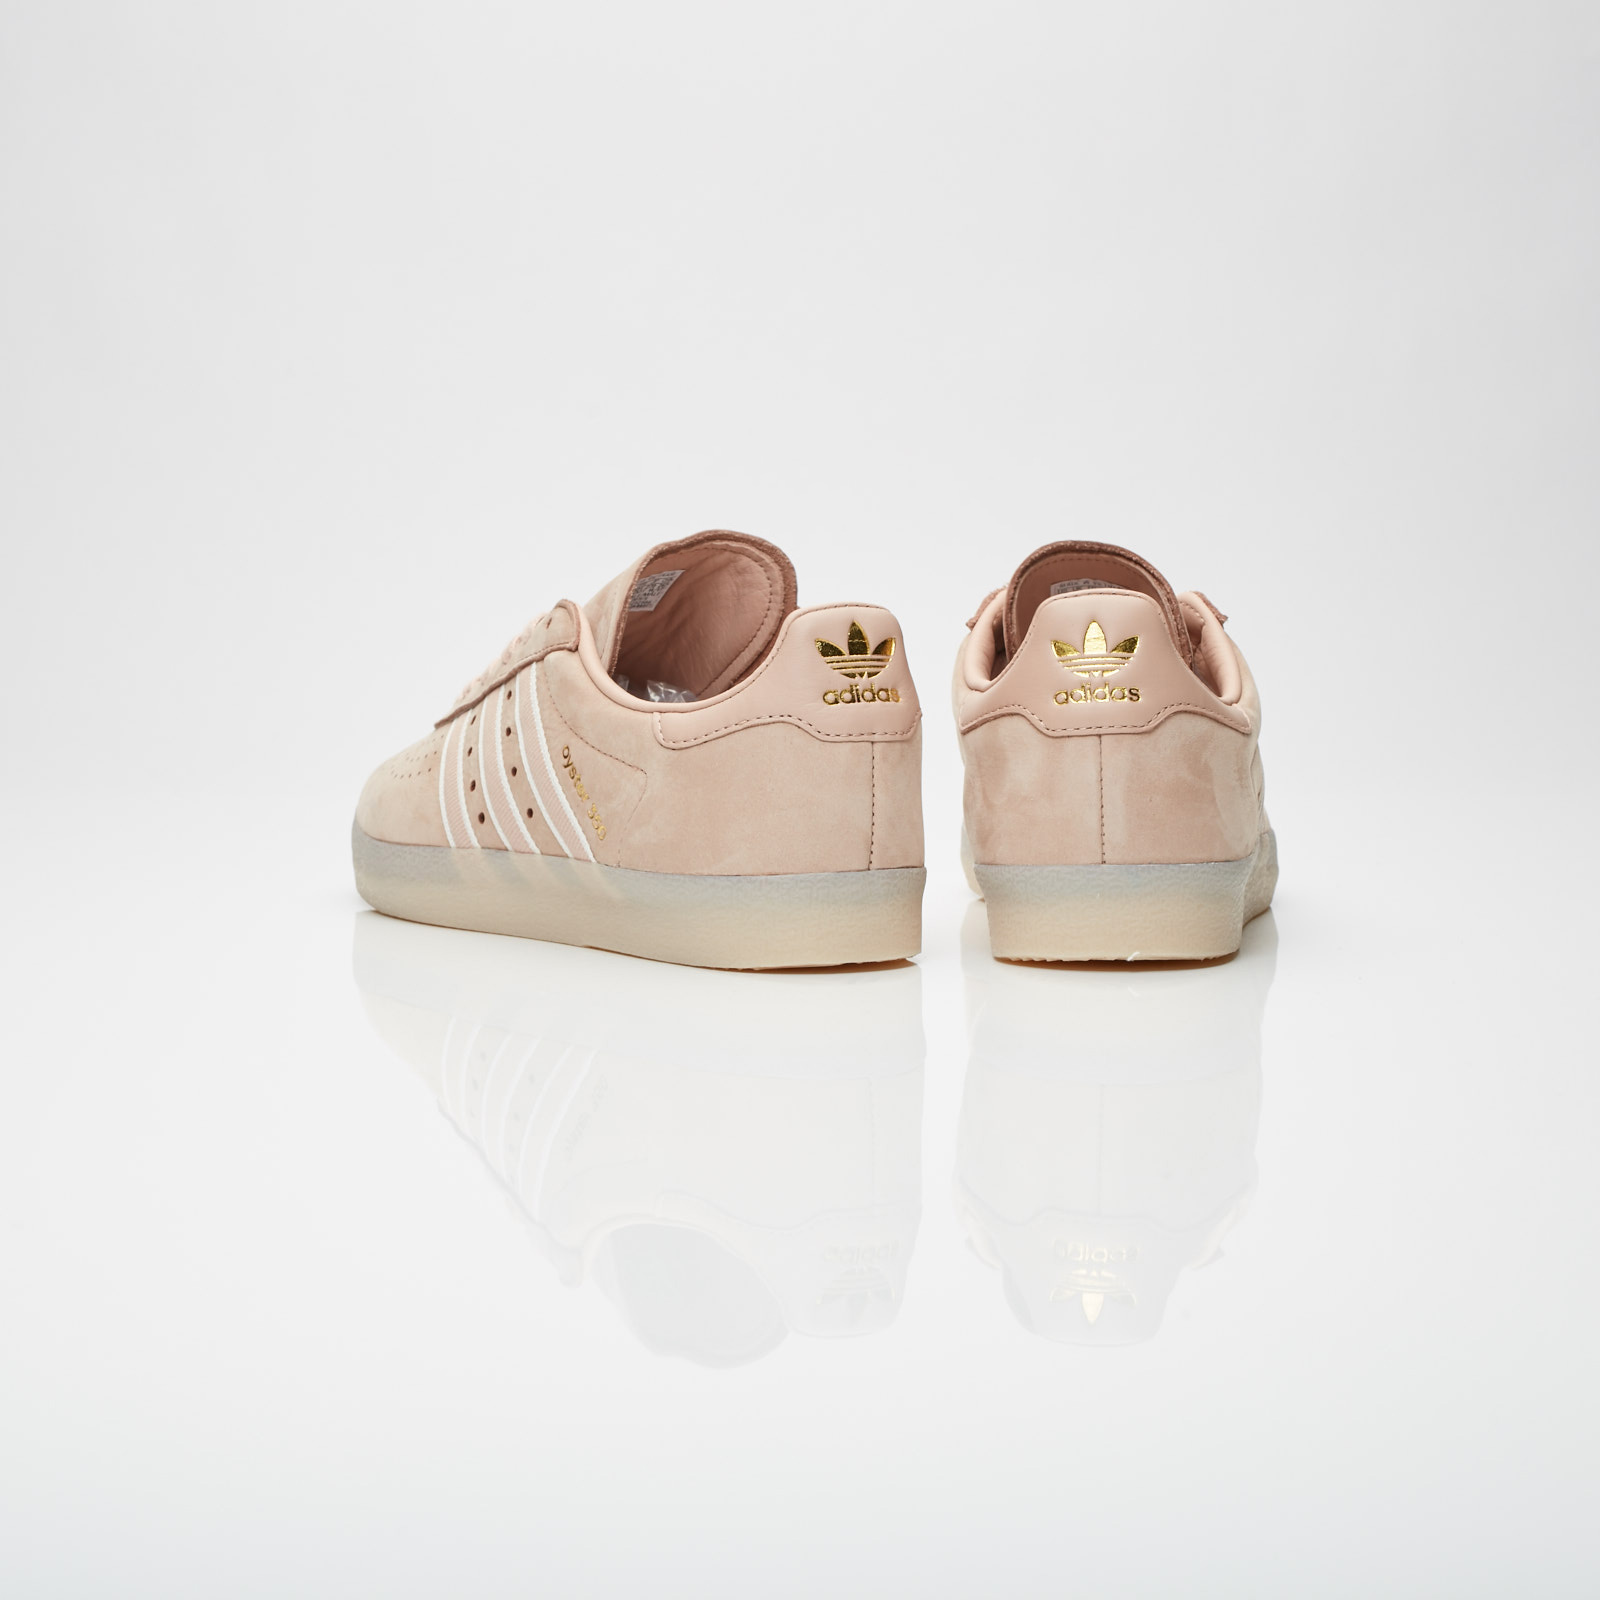 new style 87c3a c211c adidas 350 x Oyster - Db1976 - Sneakersnstuff | sneakers ...